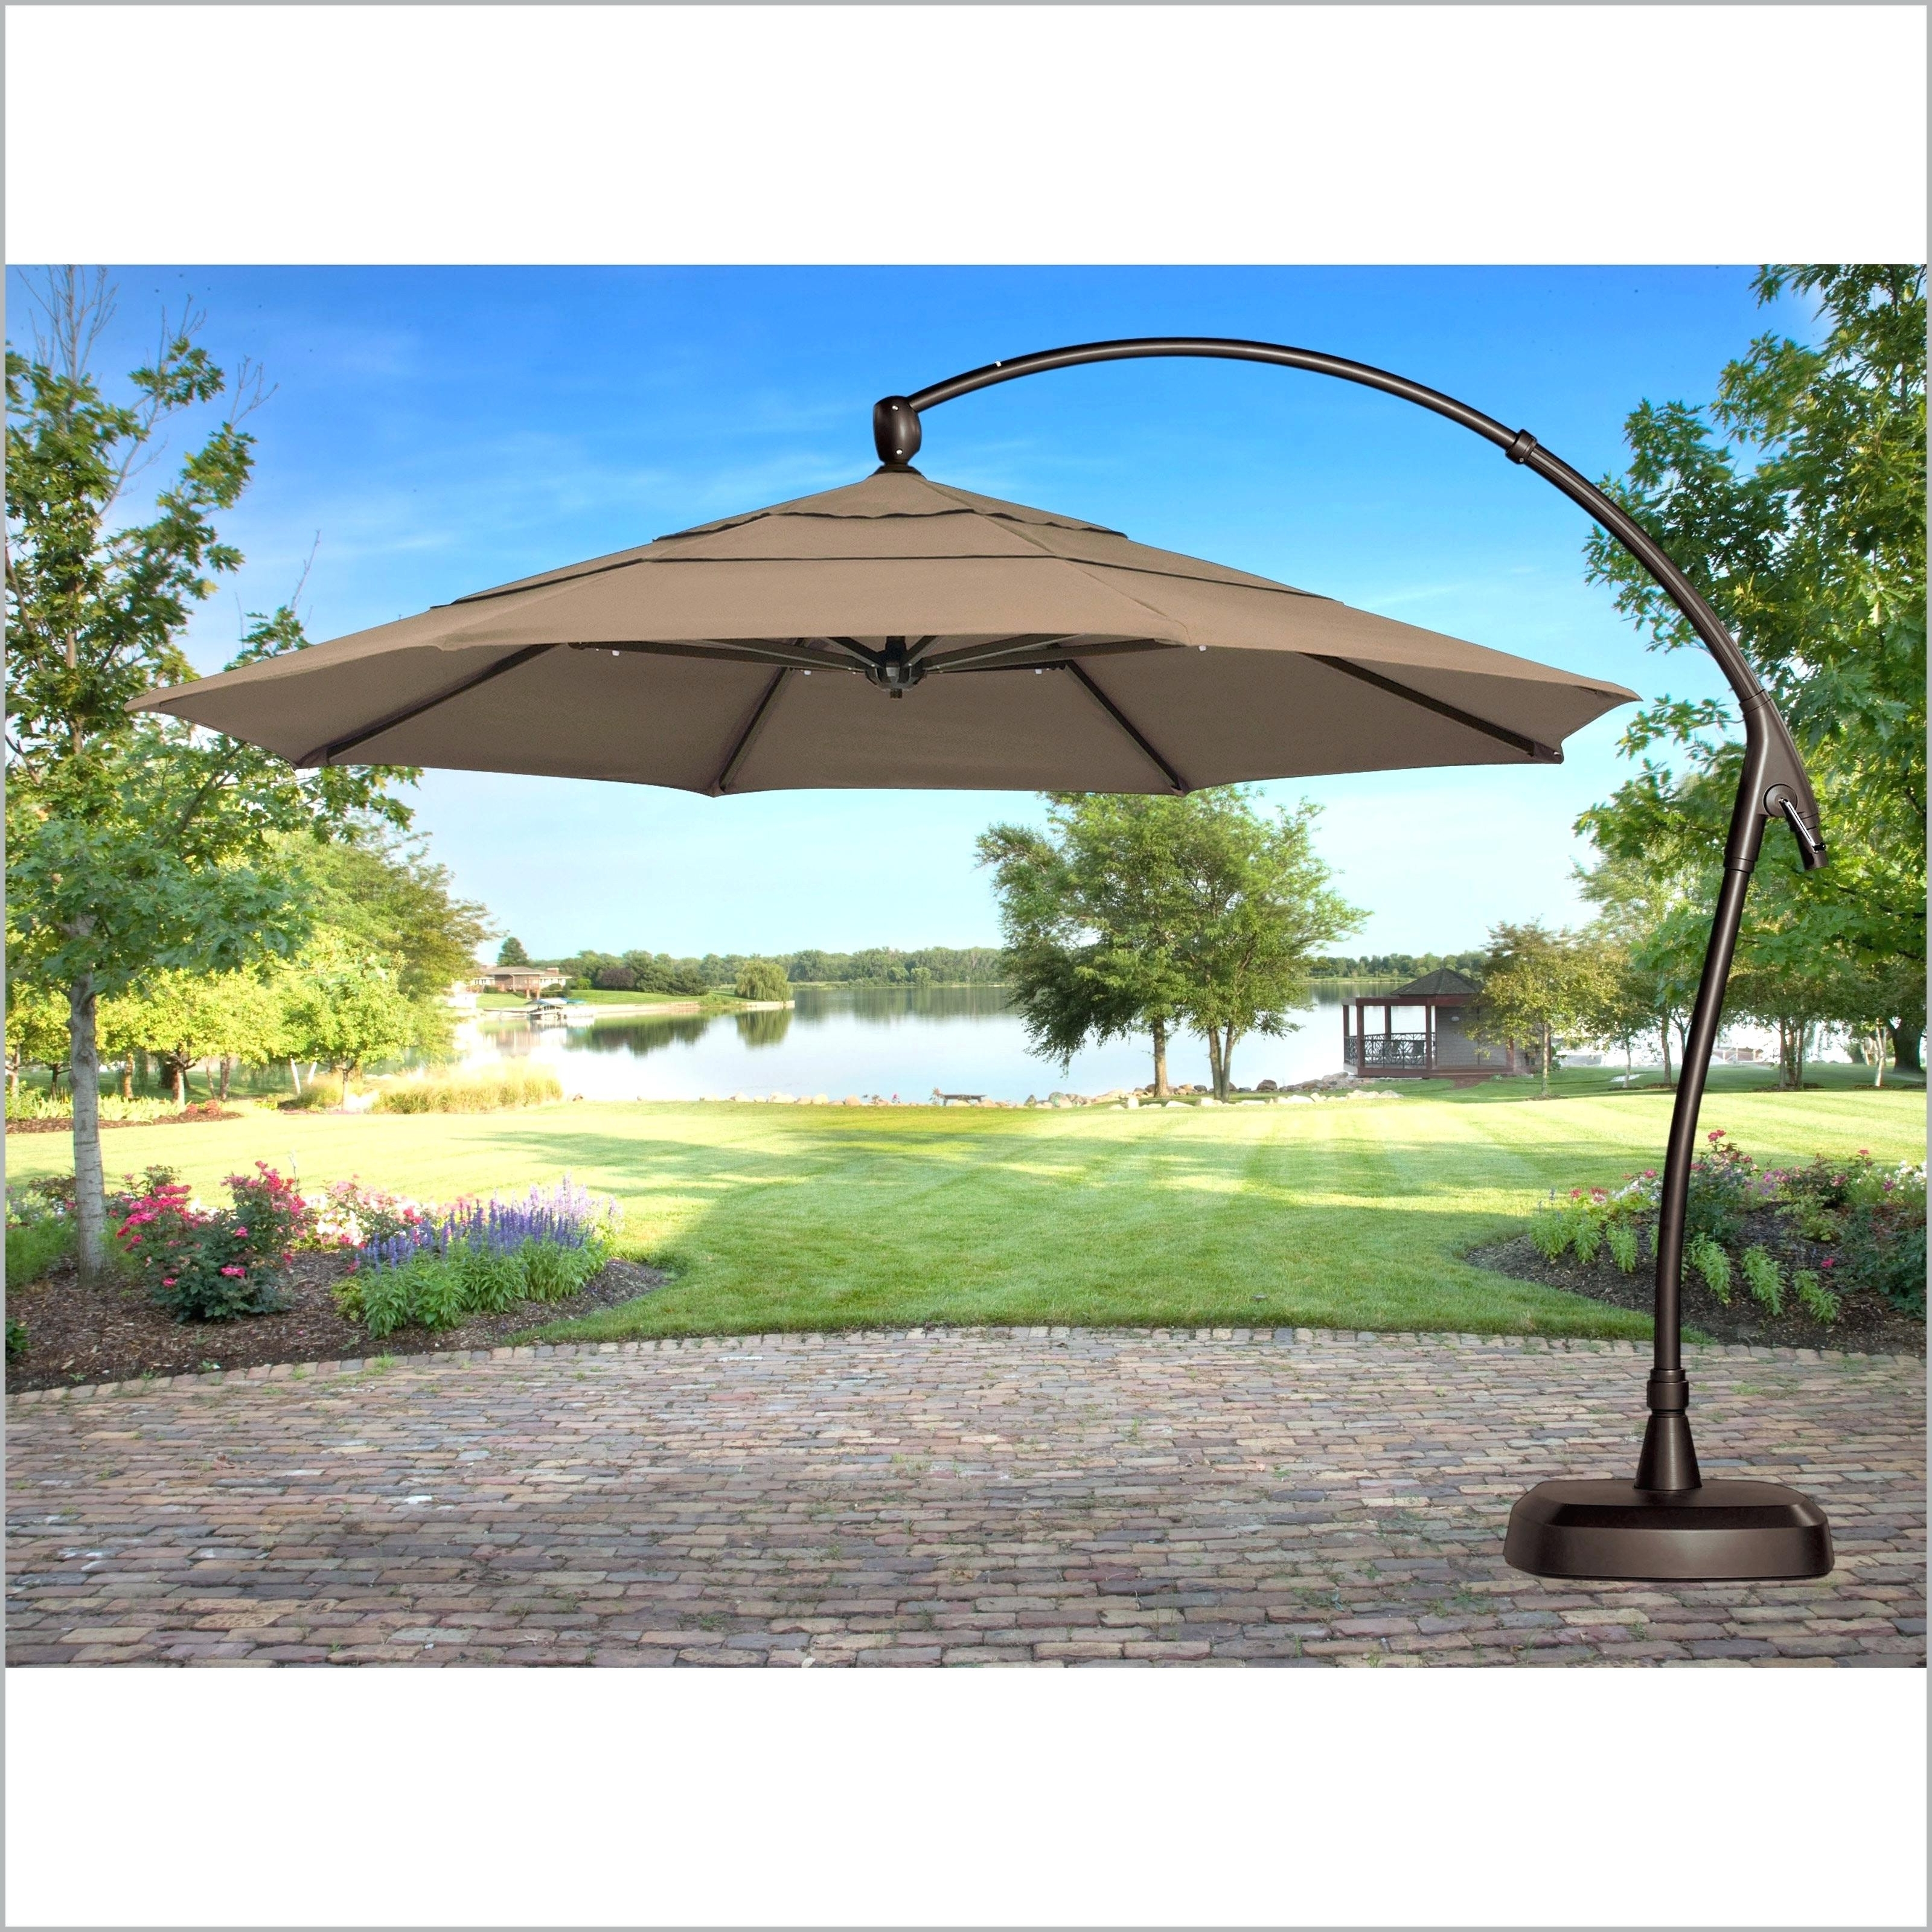 Lowes Cantilever Patio Umbrellas For Best And Newest Lowes Umbrella Base Patio Umbrellas With Lights Table Pics – Mrze (View 11 of 20)